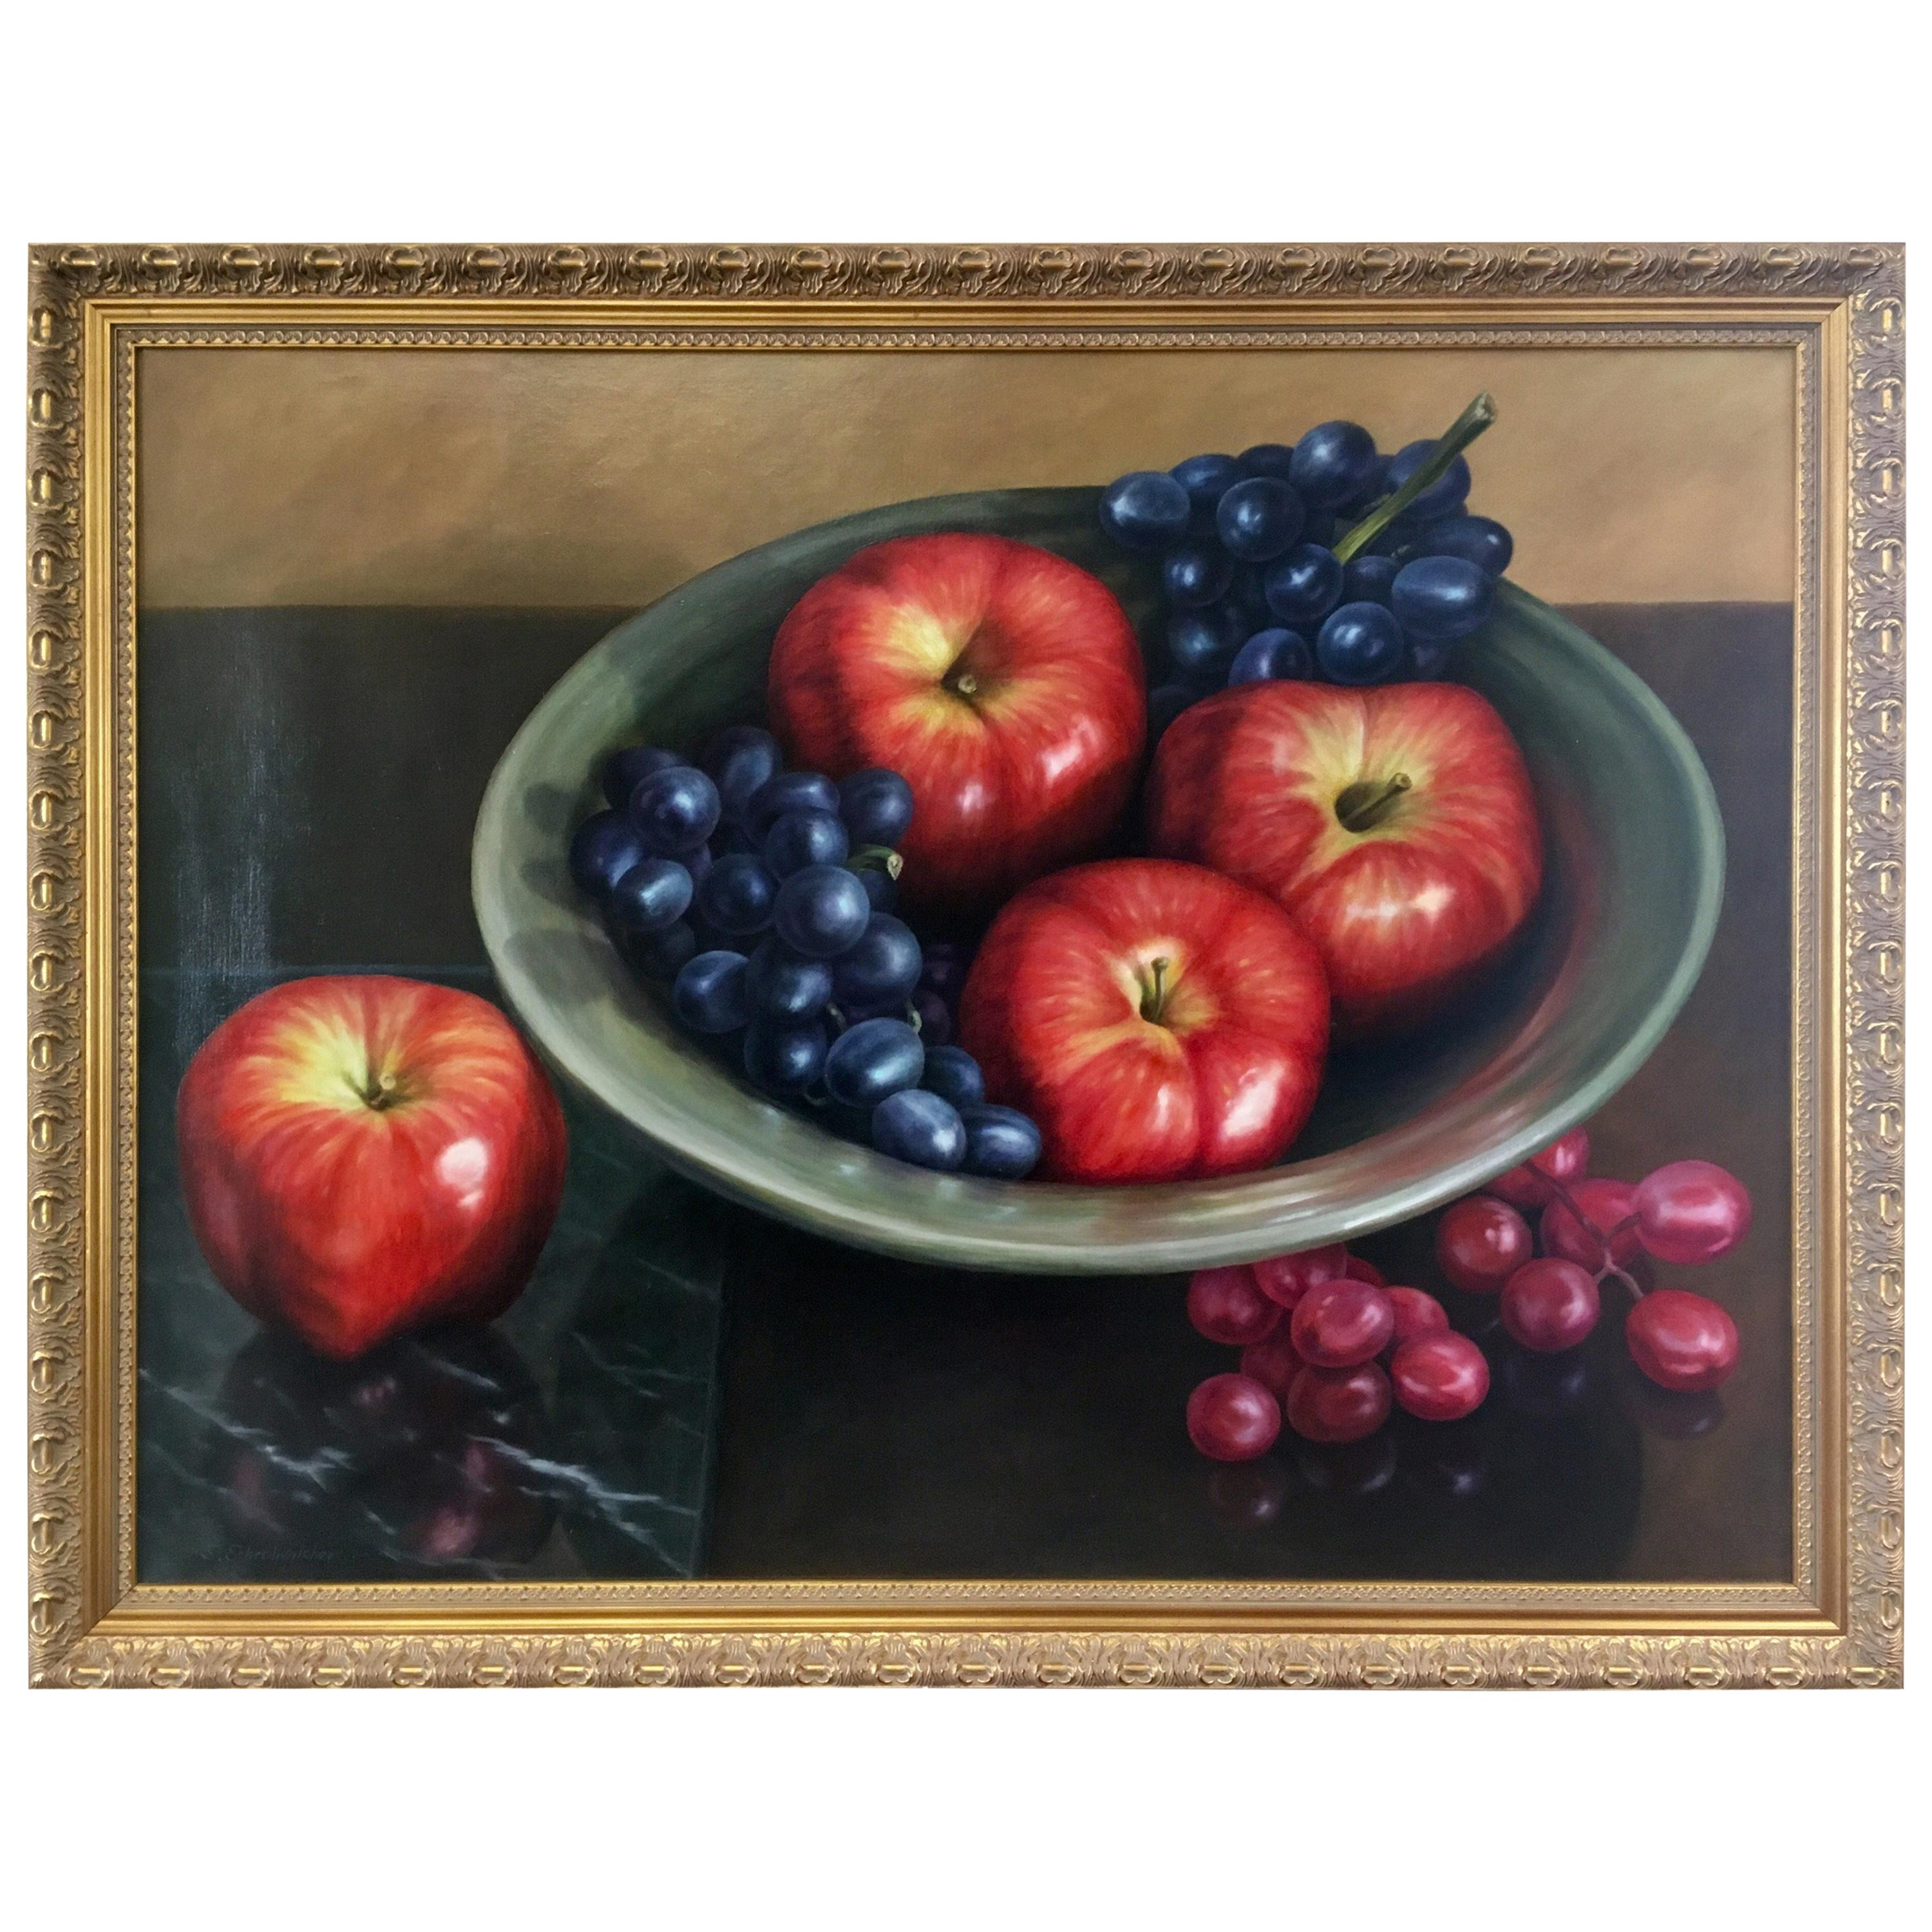 Original Oil on Canvas Signed Still Life Painting S. Schrohenlofer